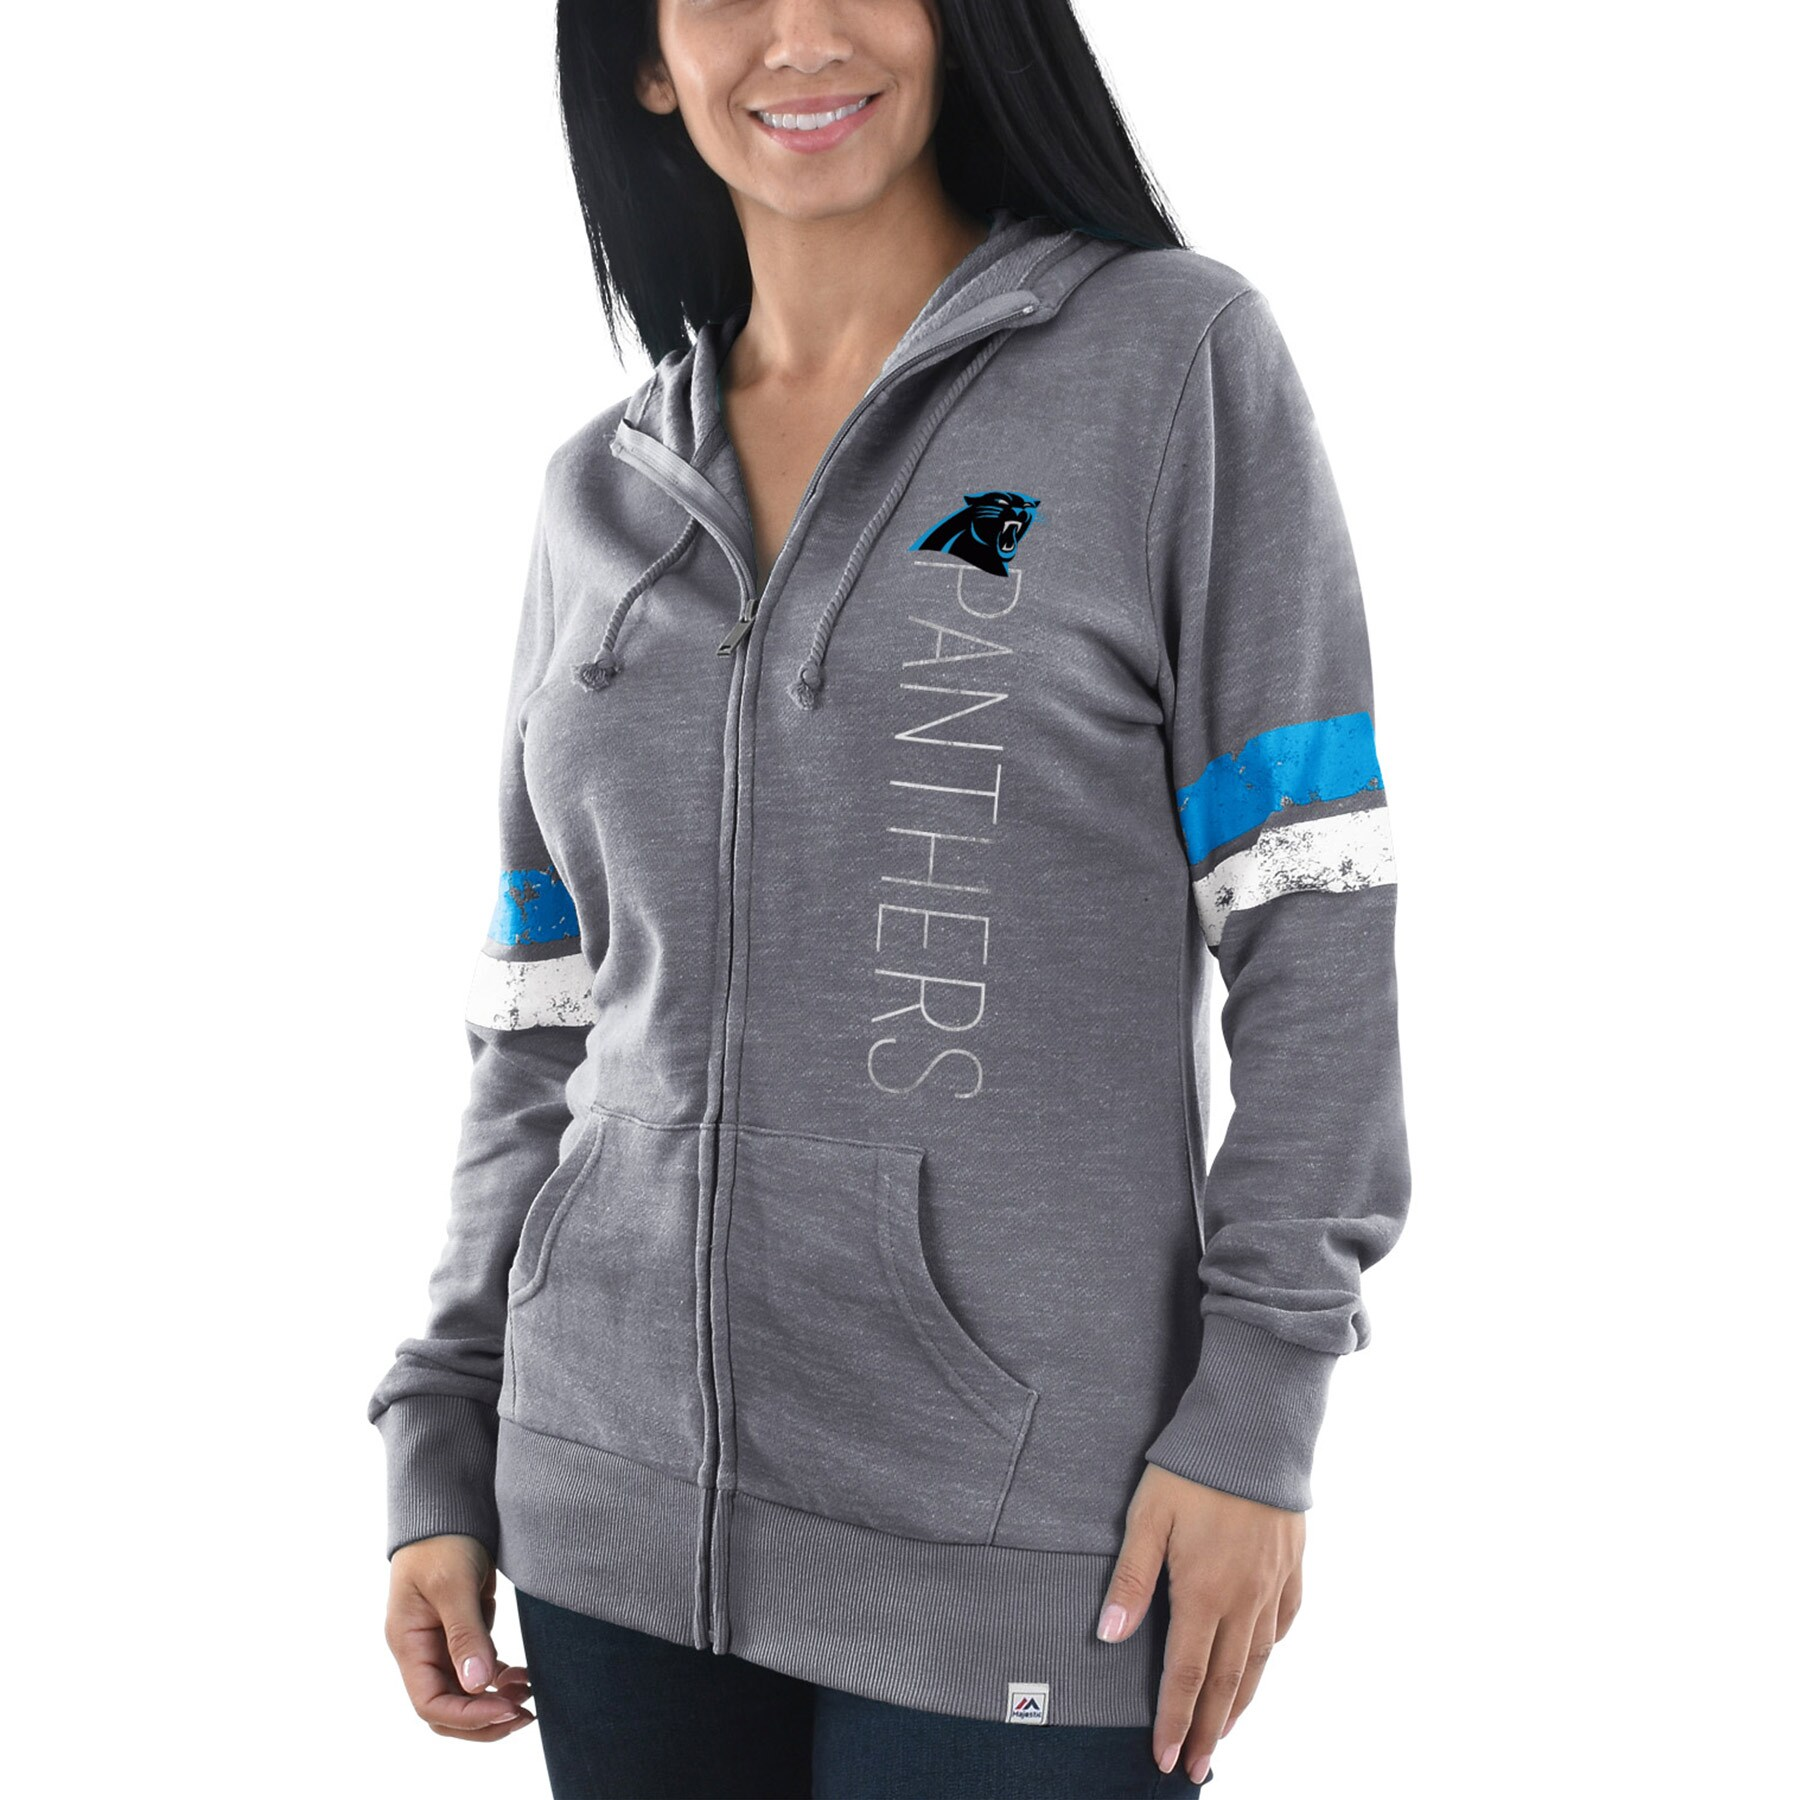 Carolina Panthers Majestic Women's Athletic Tradition Full-Zip Hoodie - Heathered Gray